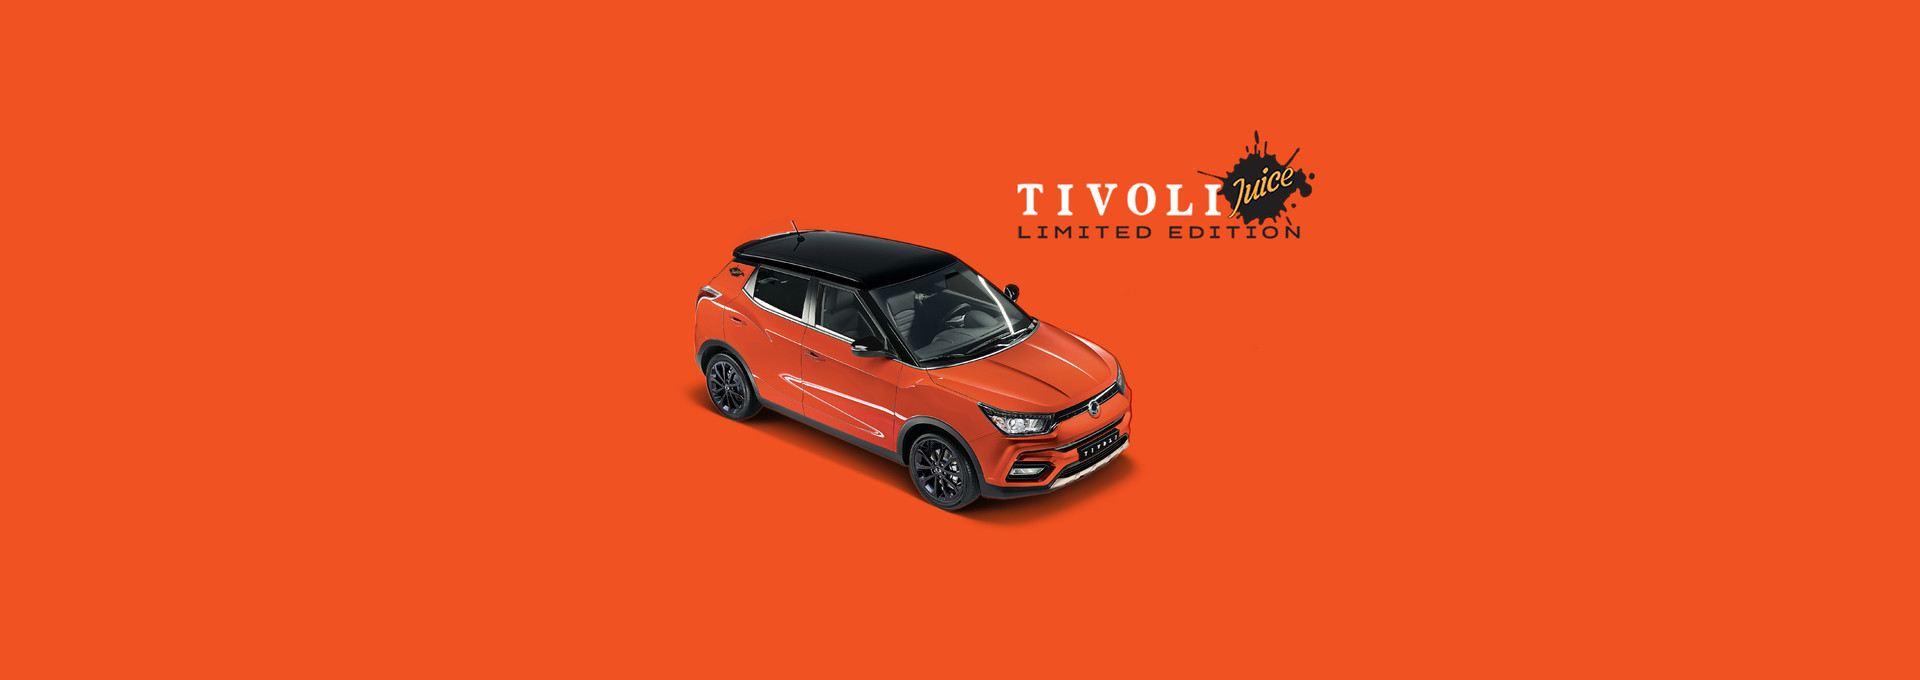 Promozione Ssangyong Tivoli Limited Edition 01